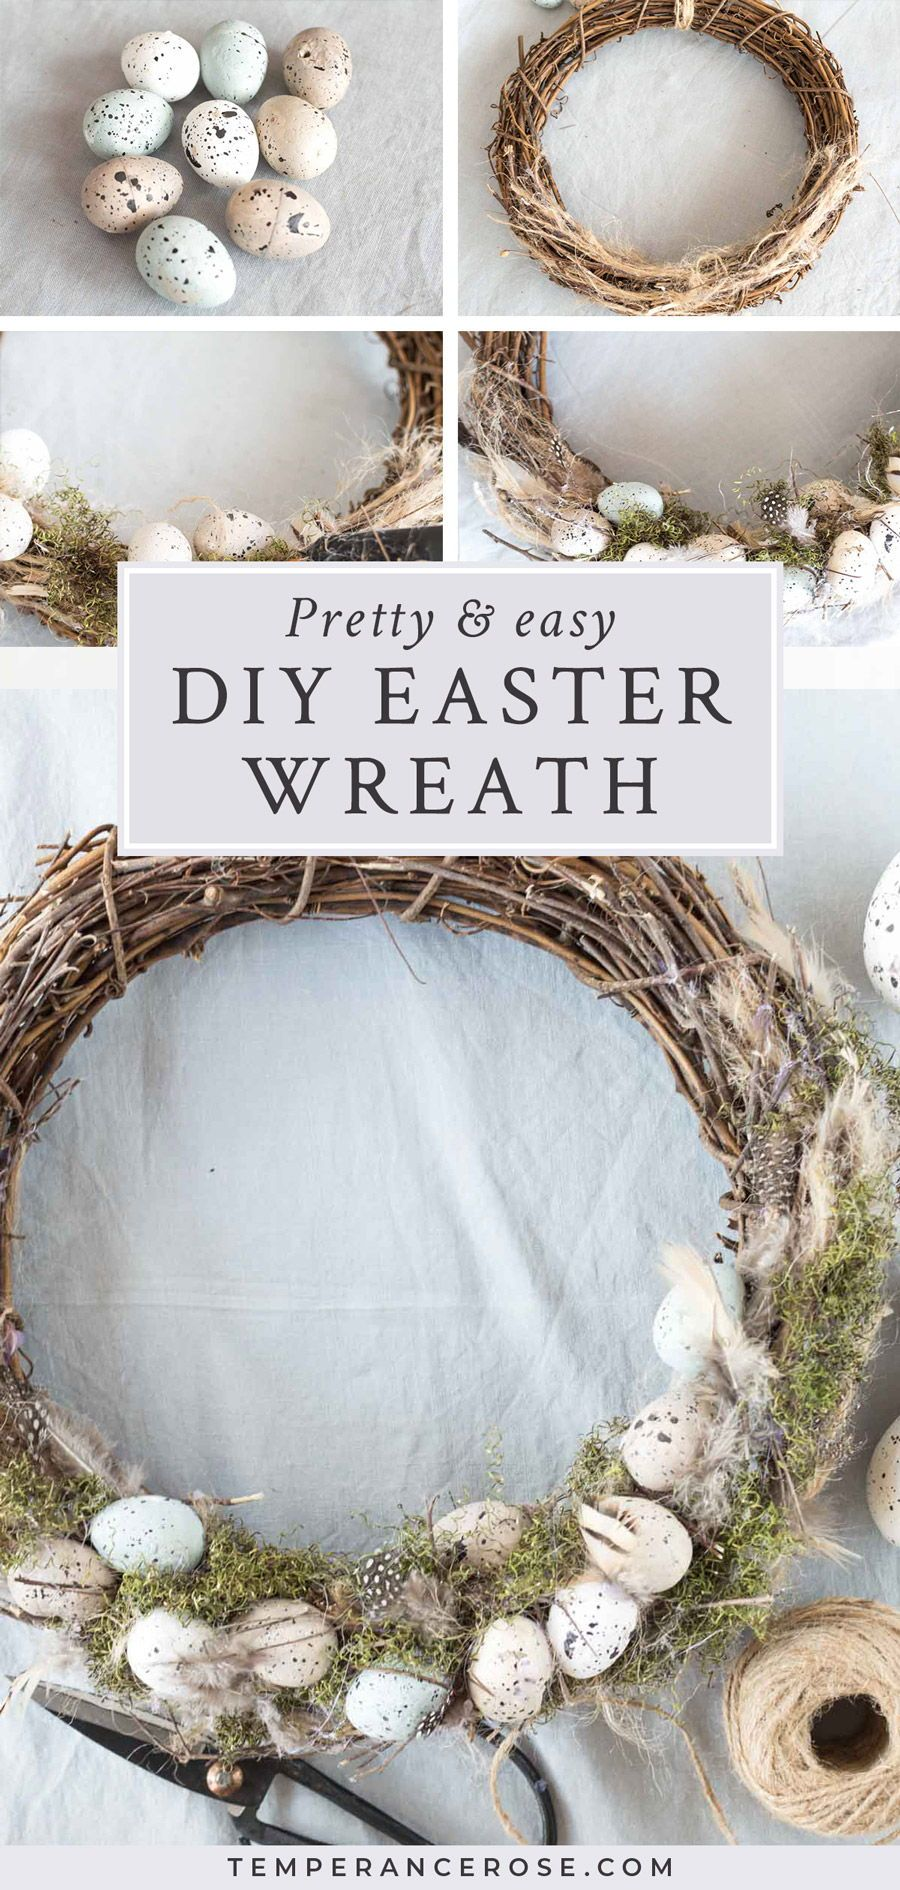 Photo of Natural DIY Easter wreath with speckled eggs